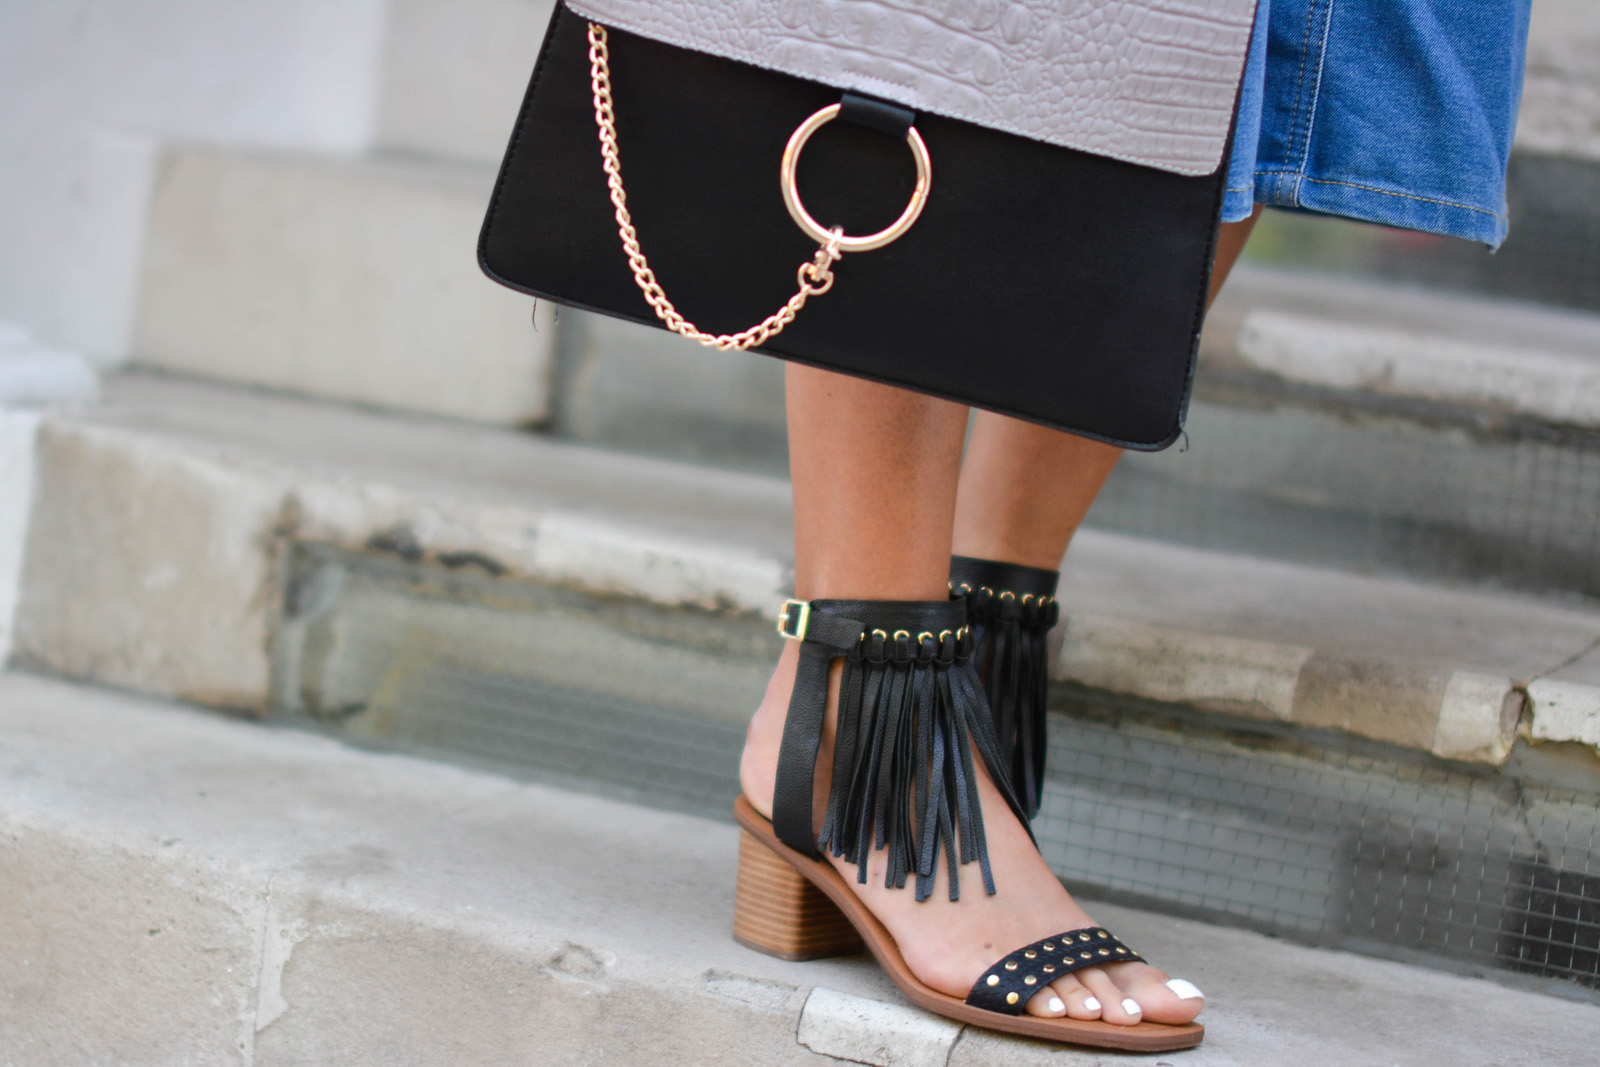 EJSTYLE-Emma-Hill-wears-Aldo-fringe-studded-sandals-Chloe-Faye-dupe-bag-London-Street-Style-summer-fashion-SS15.jpg